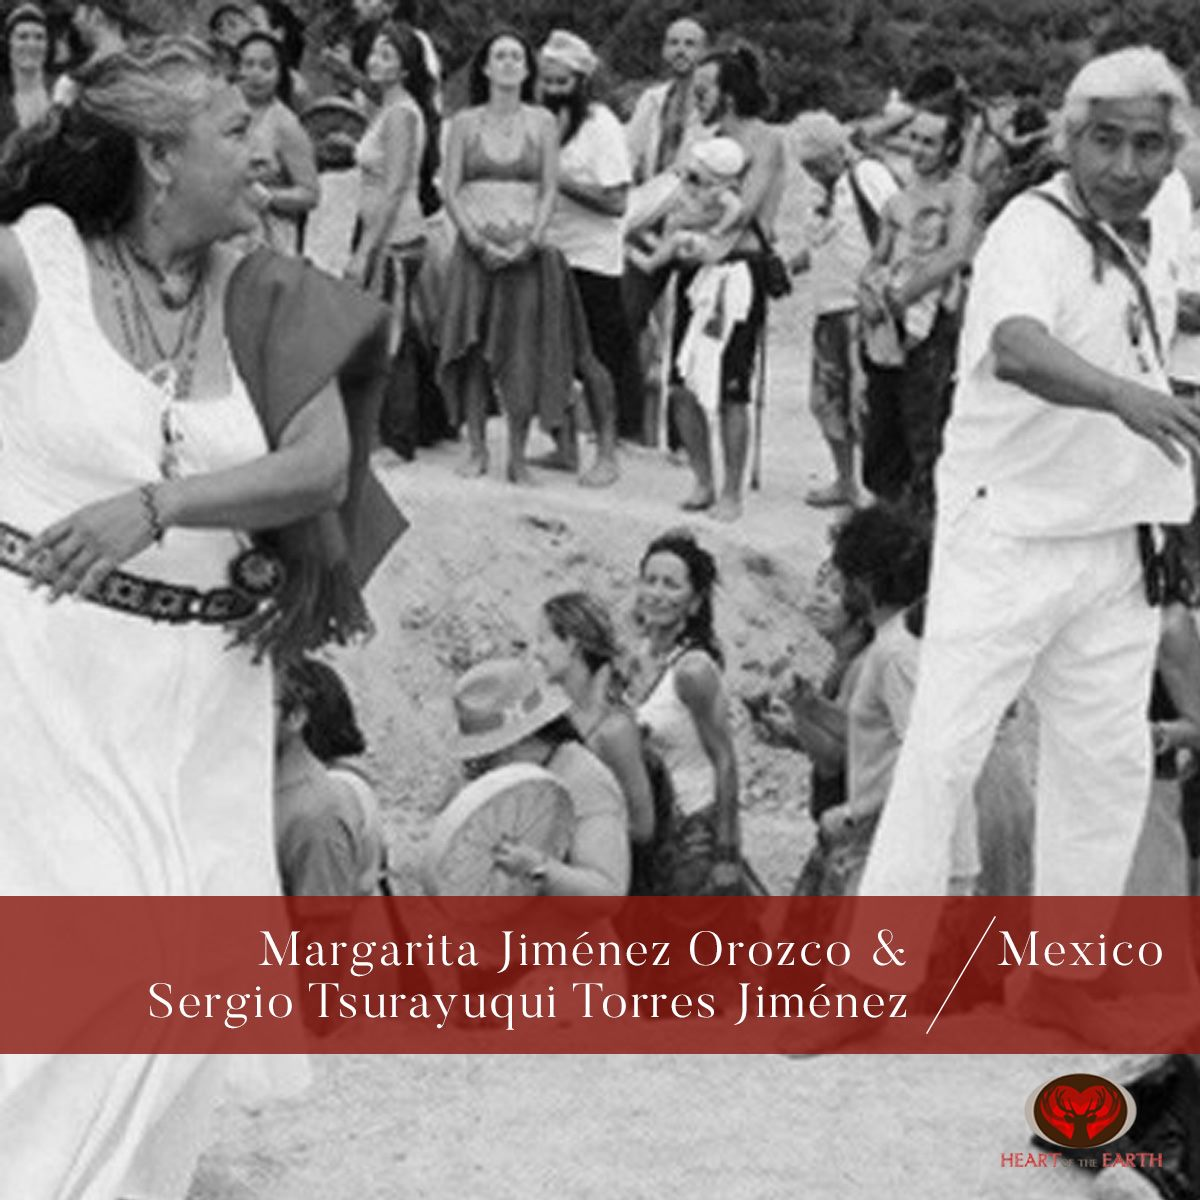 Margarita Jiménez Orozco Born in Santa Maria del Oro, Nayarit, wife of spiritual master Sergio Torres and mother of Sergio Tsurayuqui. Margarita began the path of the spiritual martial arts at 23 years old and the Red Road at 25, when legendary chief Raymundo Tigre Perez arrived in Nayarit, they formed a clan called Zicuri and Margarita immersed herself in the cultural and traditional teachings, becoming a Wirikuta pilgrim with Wixarika community Taimarita, led by Marakames Pablo Taizan y Lucia Lemus. Margarita is the co-founder of intertribal ceremonial center Tatepoxco in Tequepexpan Nayarit, which preserves and practices the ceremonies and traditions of our ancestors such as vision quest and temezcal and has kept the prayer and sacred fire of the Kiva for the past 14 years.  José Zamora Lizárraga Originally from Stone Island, Mazatlán Sin. Mexico. His beginnings on the red path are since his childhood, through plants and traditional medicine. He is fisherman of profession, father of two daughters, homelike person, kind with a beautiful simplicity. Wirikuta desert pilgrim with the community Wirrarika Yurata Nayarit. Temazcalero, visionary of the mountain and corridor of Peace and Dignity, comes from the fire of Raymundo Tigre Pérez in the community of Tatepoxco Nayarit. Active collaborator of the Kivas in England and Mexico.